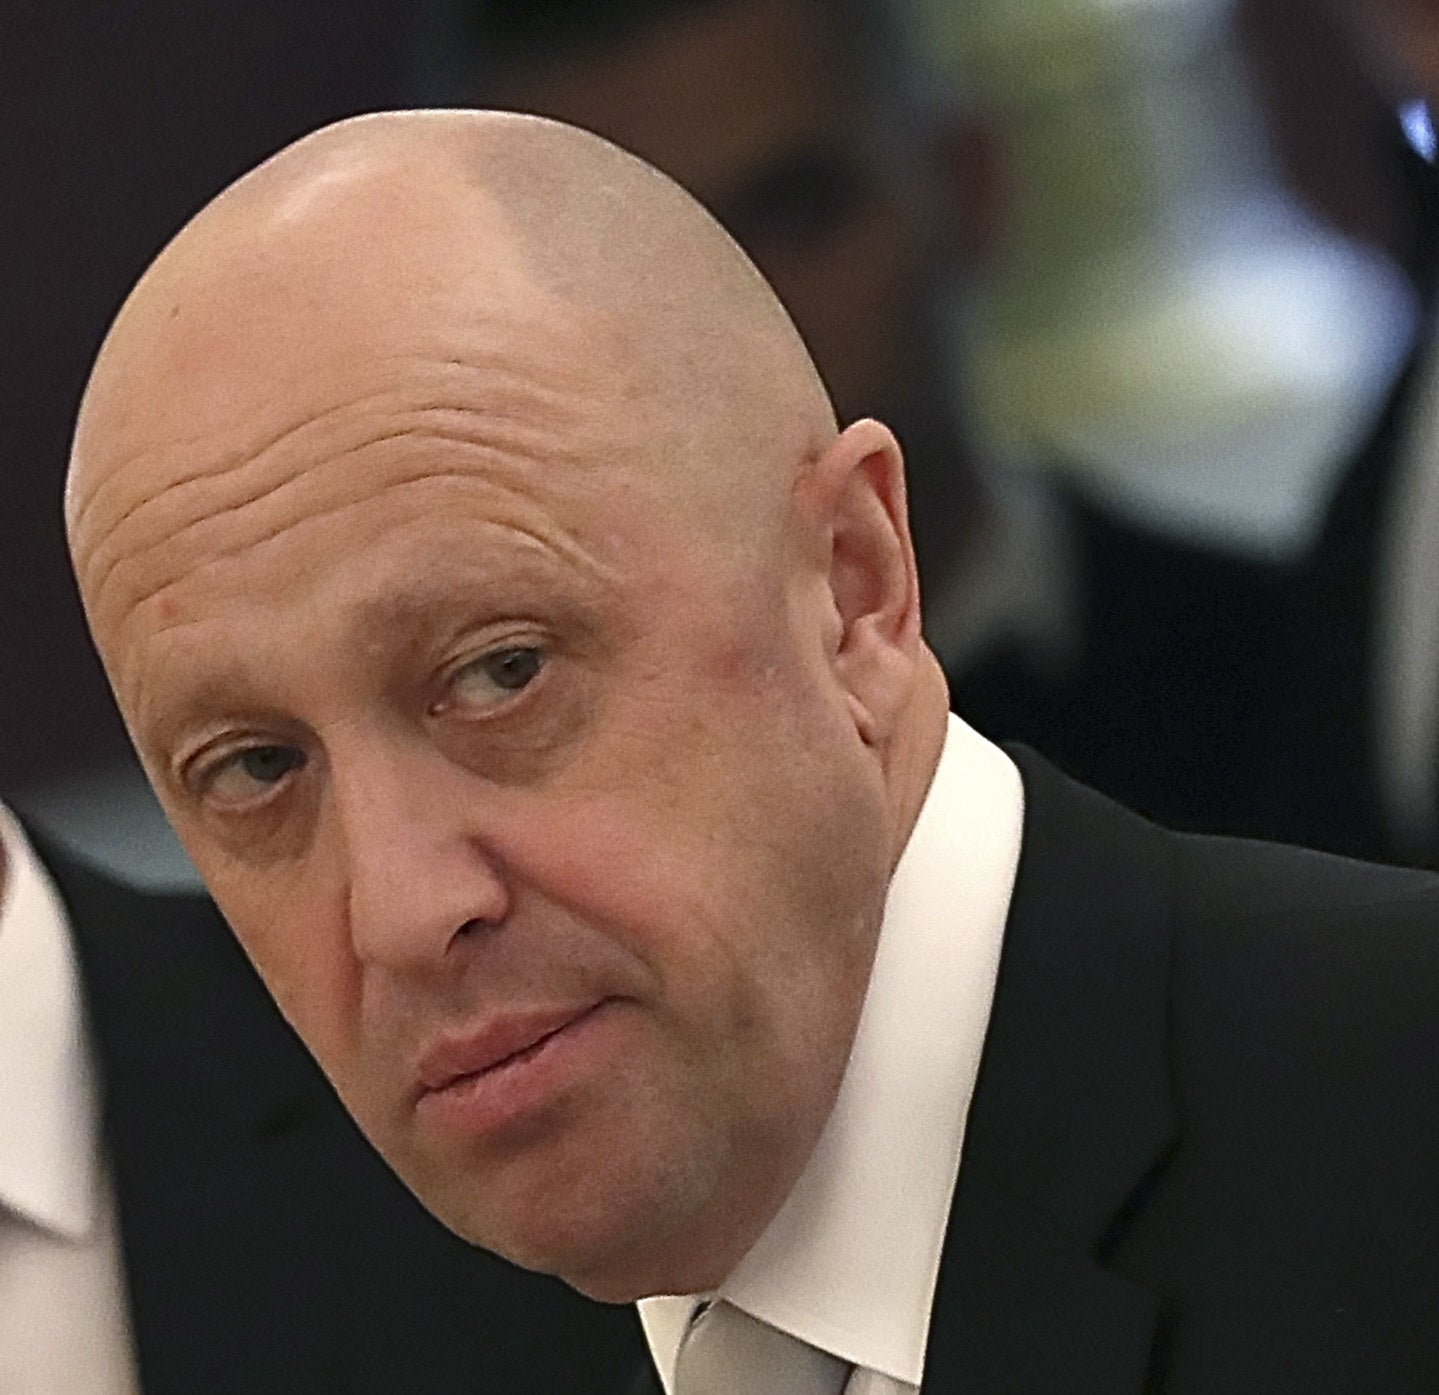 Russian businessman Yevgeny Prigozhin, who owns Concord Management.